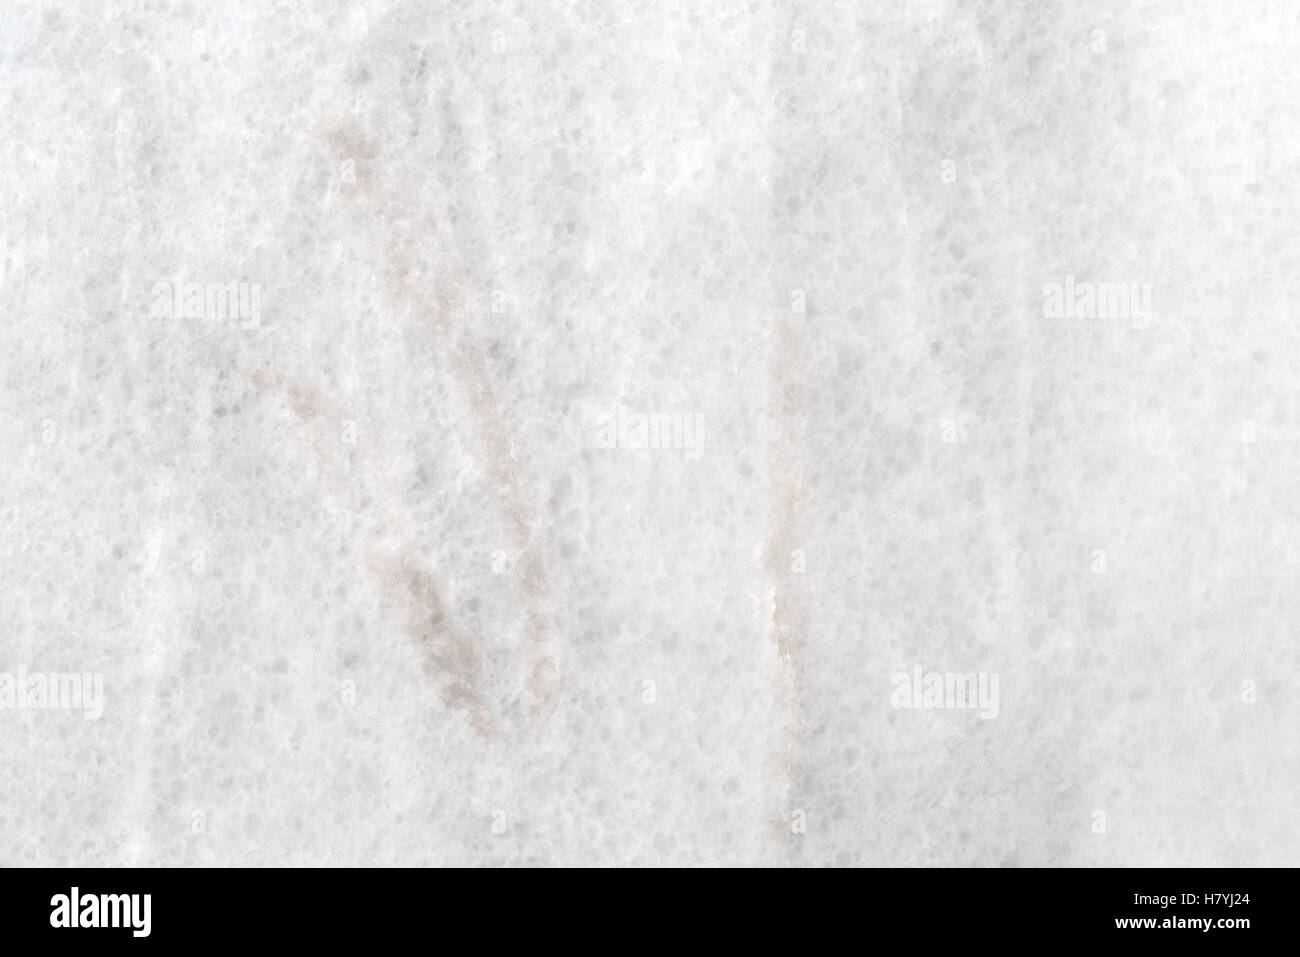 marble counter texture. Very Close View Of A Gray Marble Counter Top Texture